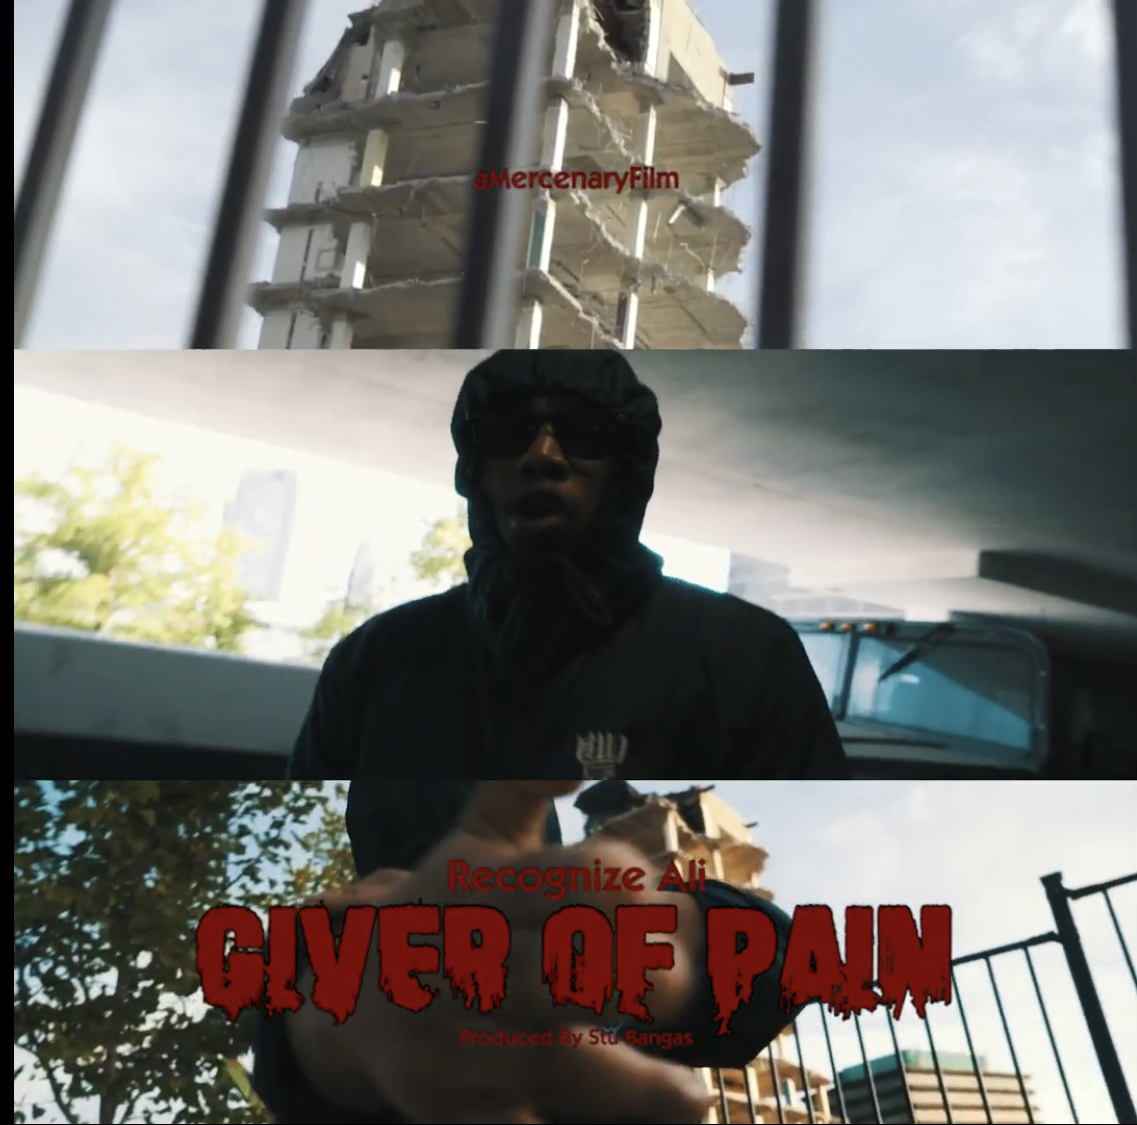 """Recognize Ali & Stu Bangas """"Giver Of Pain"""" Video Trailer"""